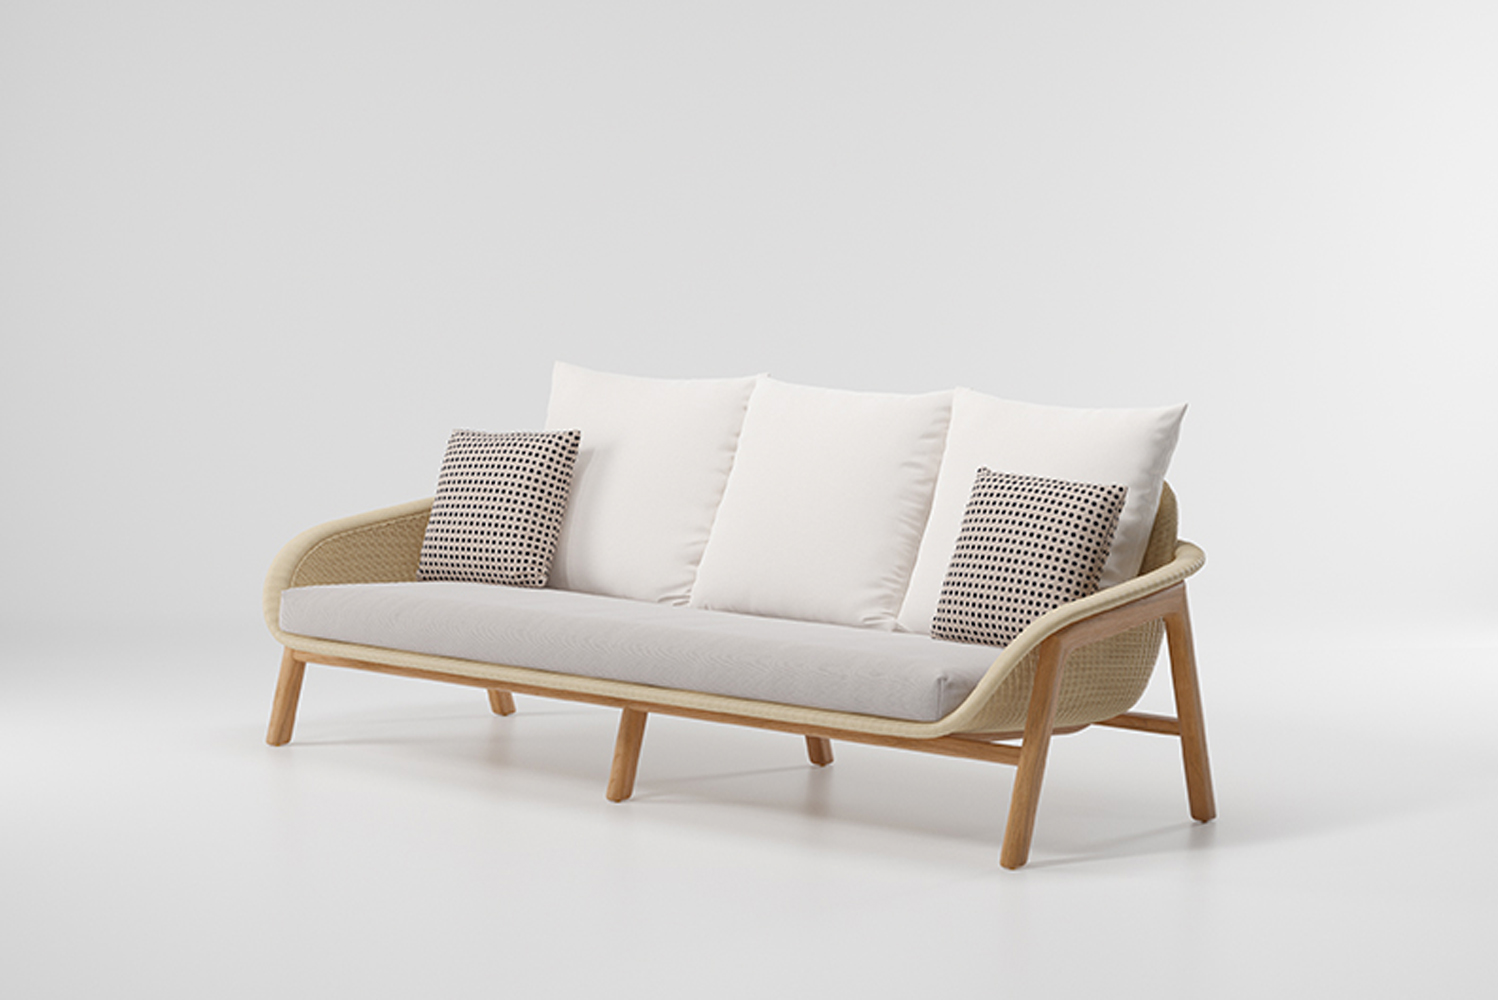 The sofa and chairs have wood frame to ensure durability when exposed to the elements.